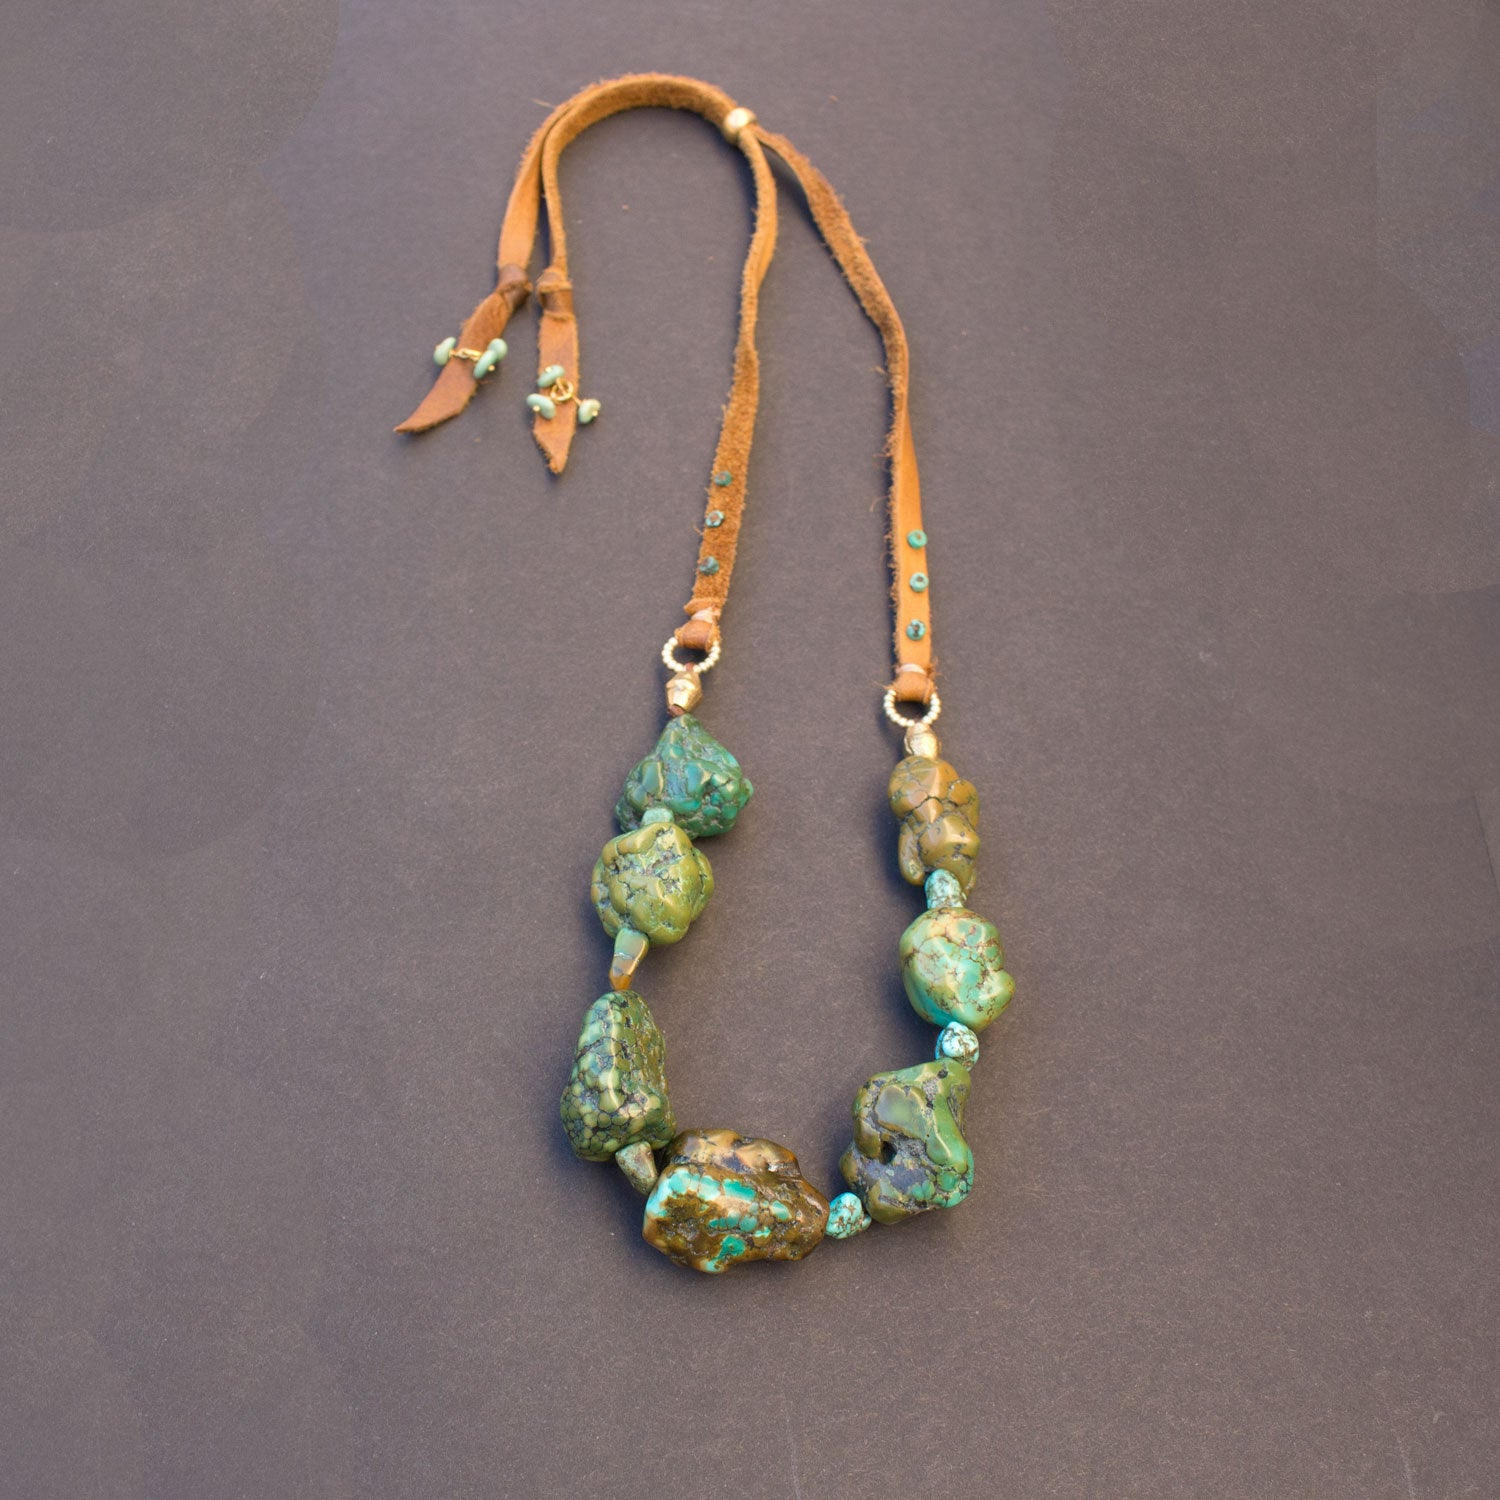 Raw turquoise leather necklace